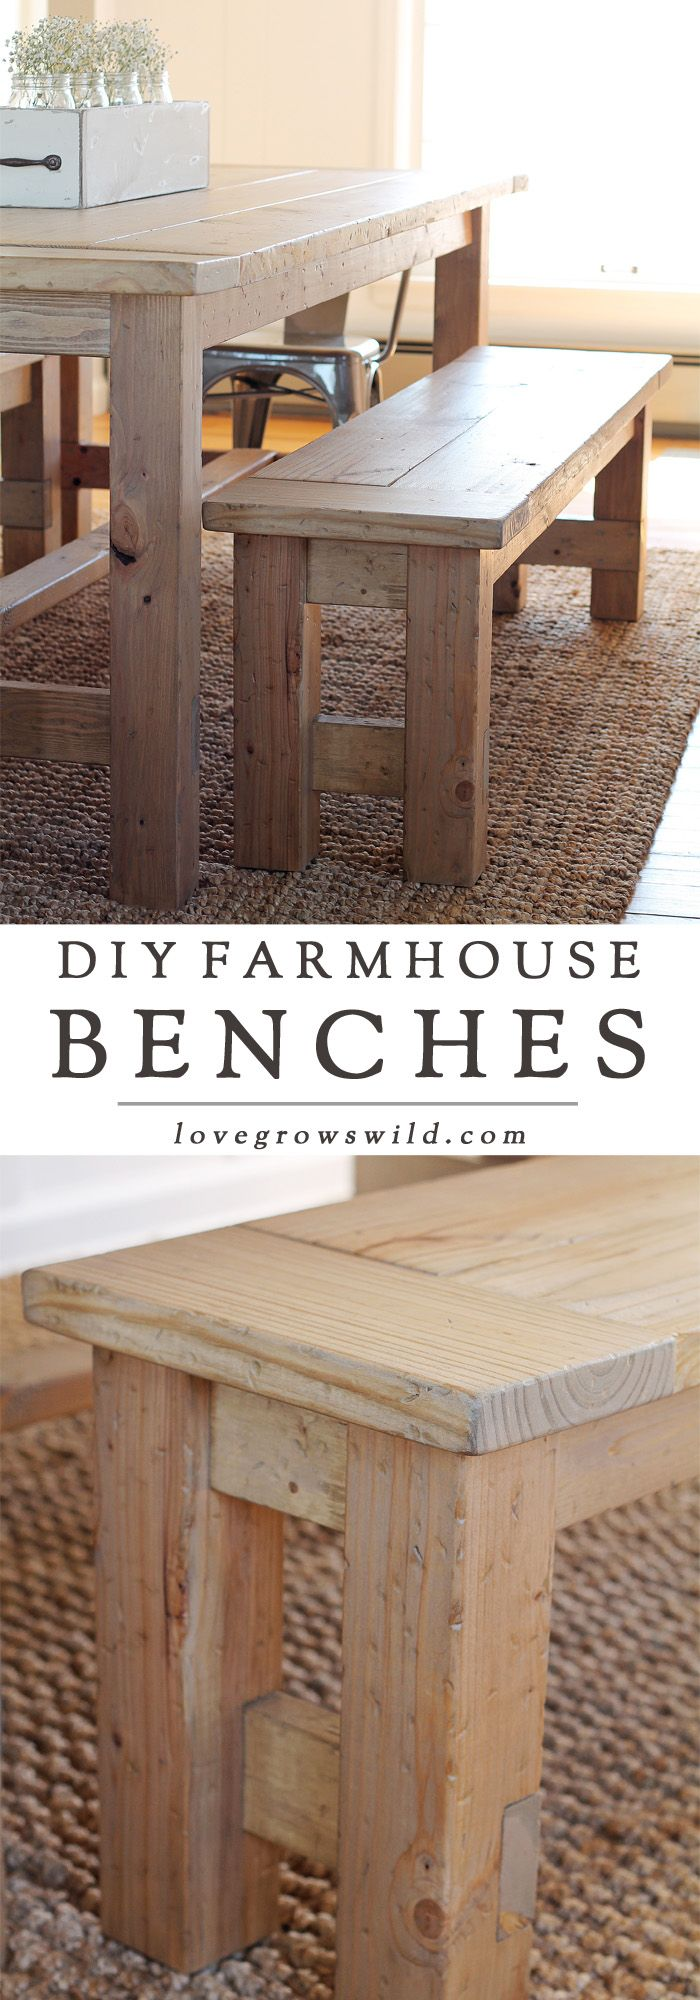 diy farmhouse bench kitchen for kitchen tablediy tablediy dining